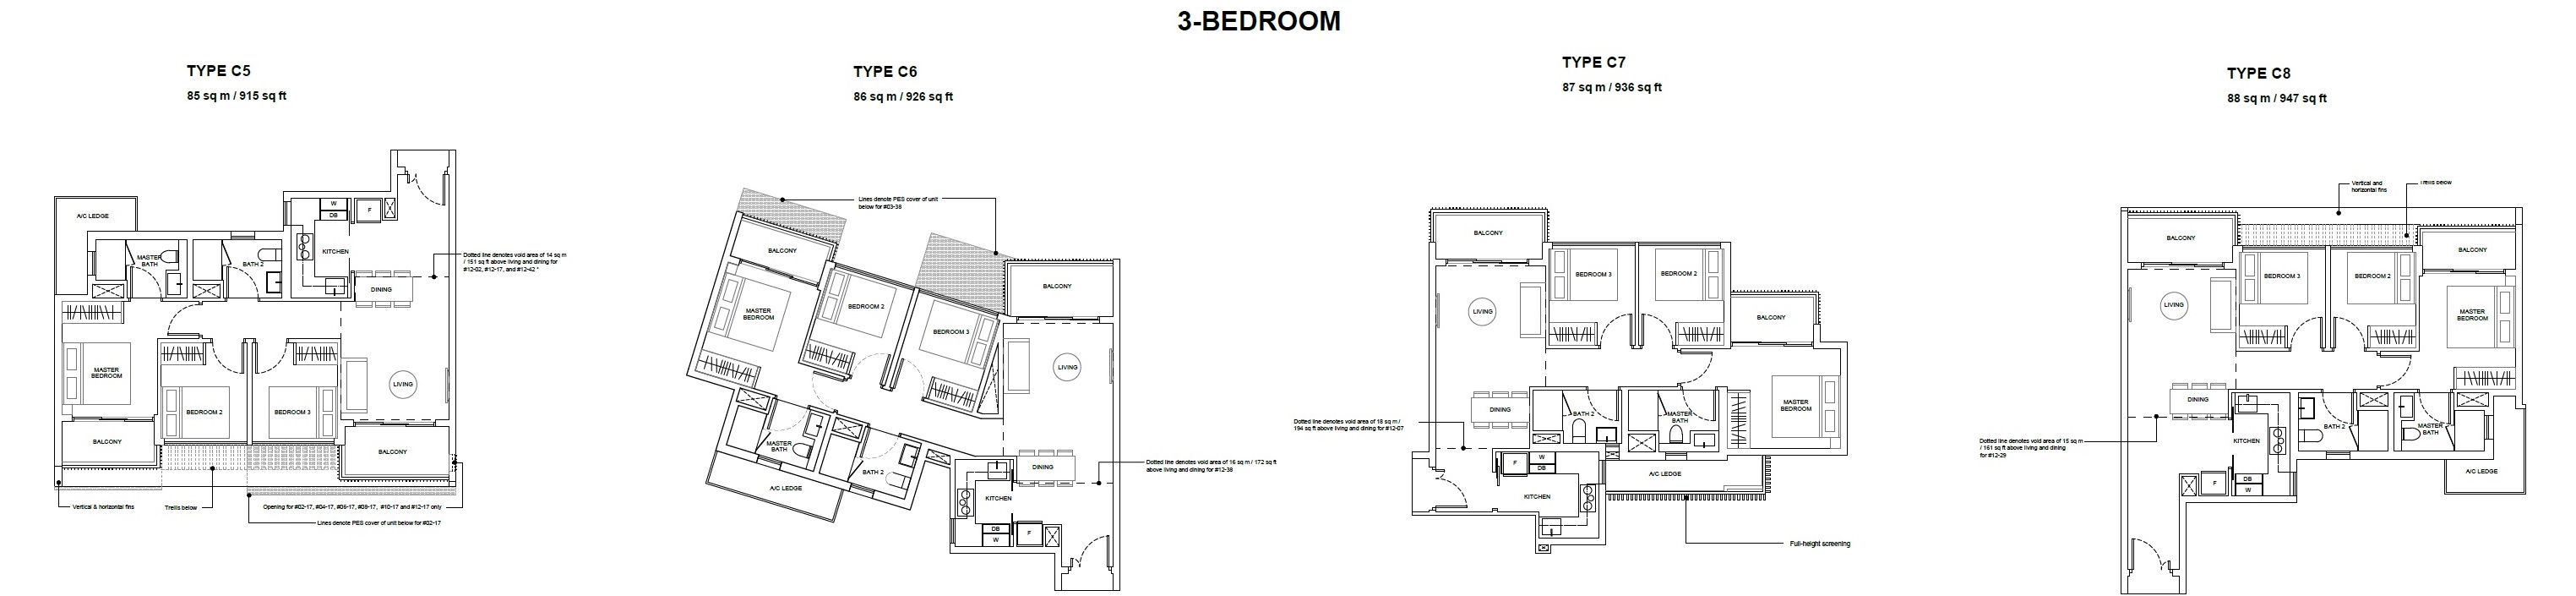 forest-woods-floor-plan-for-three-bedroom-type-c5-to-c8